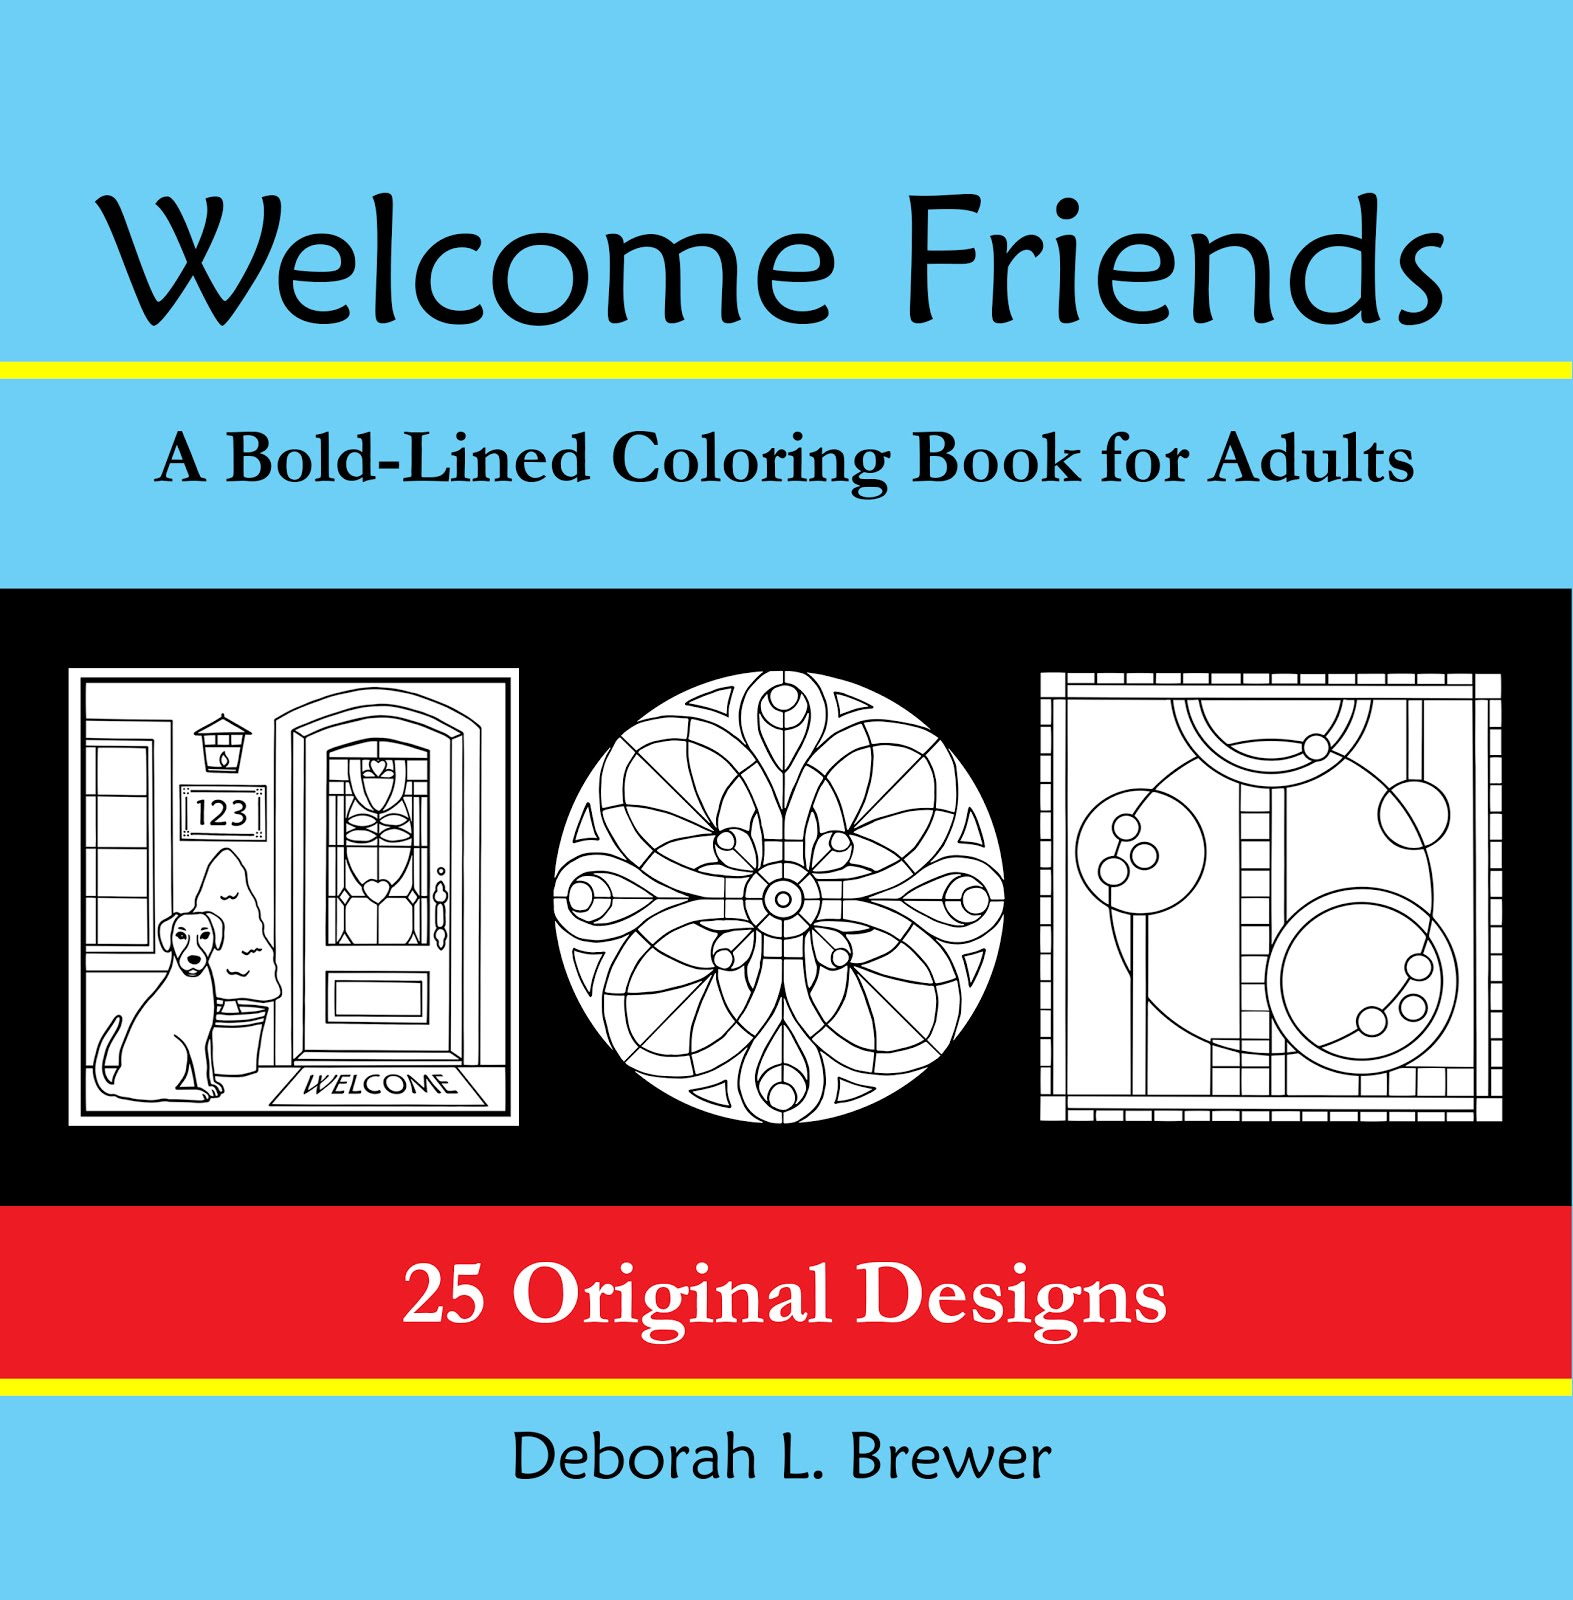 <b>Welcome Friends</b><br>by Deborah L Brewer